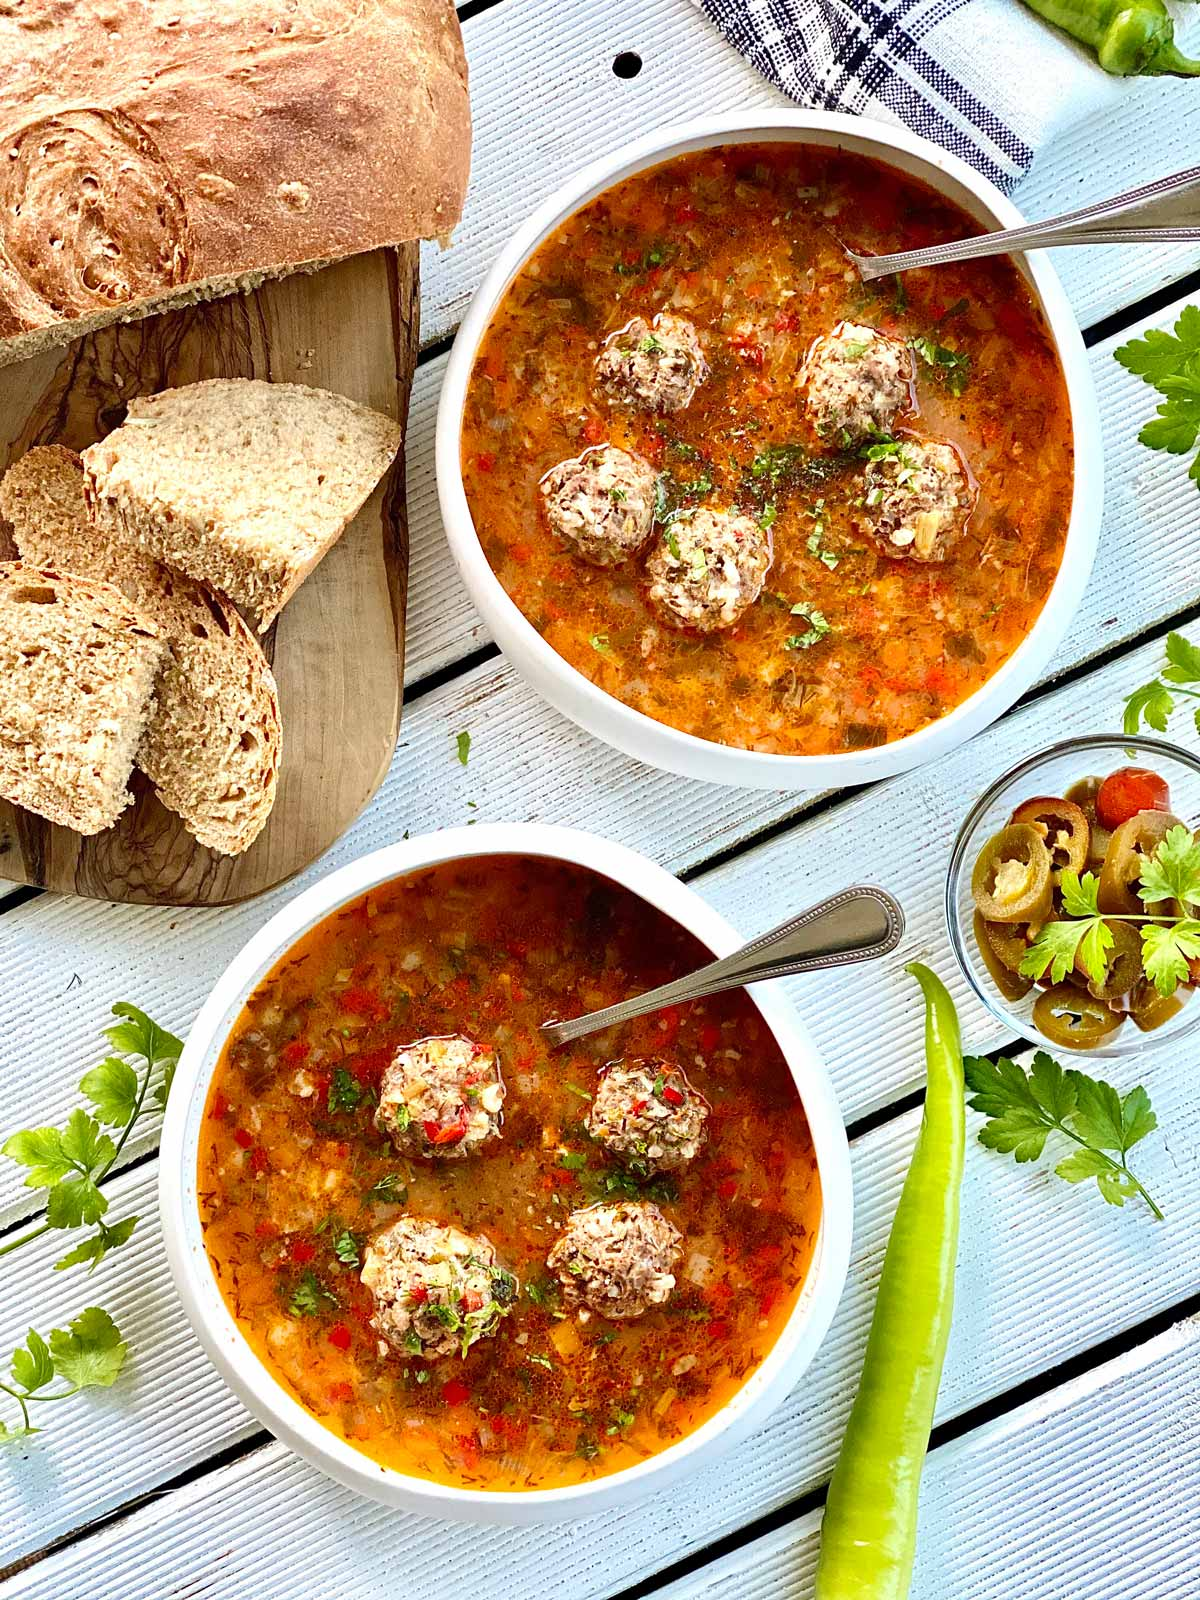 two white bowls with meatballs soup and spoons in with bread slices on the left and a small serving dish on the right filled with pickled jalapenos some fresh parsley leaves scattered around and a green pepperright